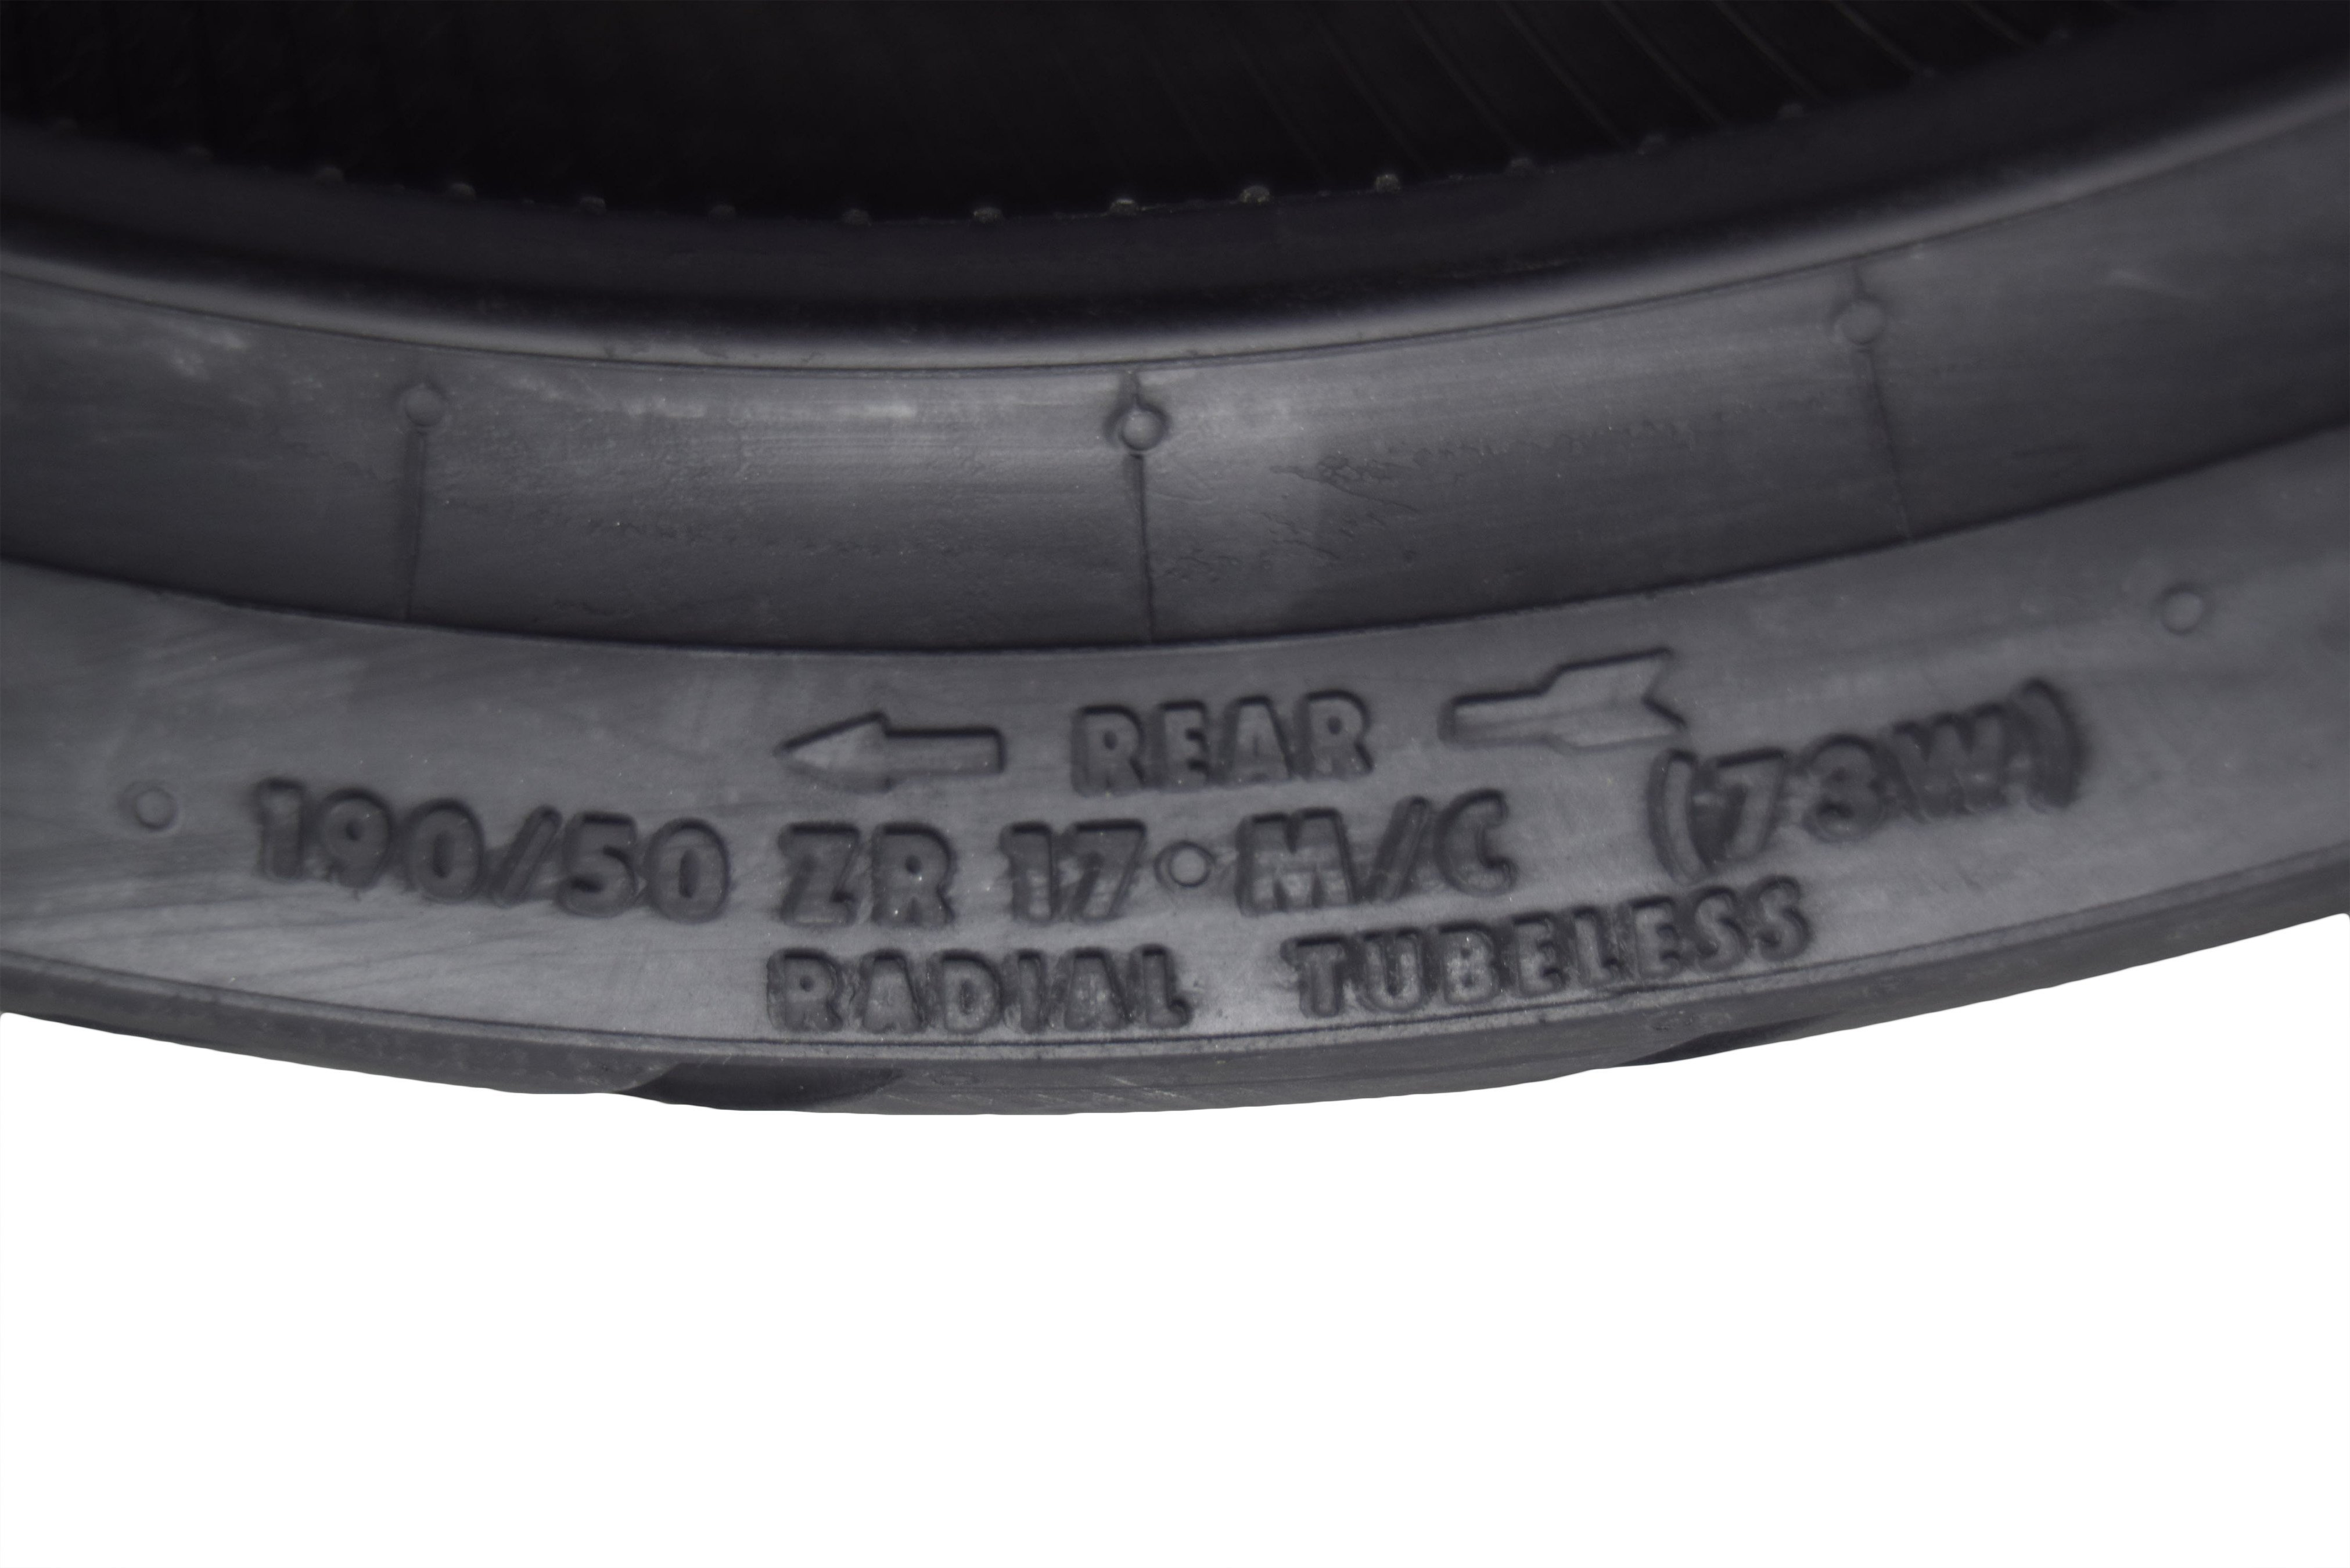 Continental-190-50-17-Motorcycle-Tire-Rear-Single-Tire-image-2